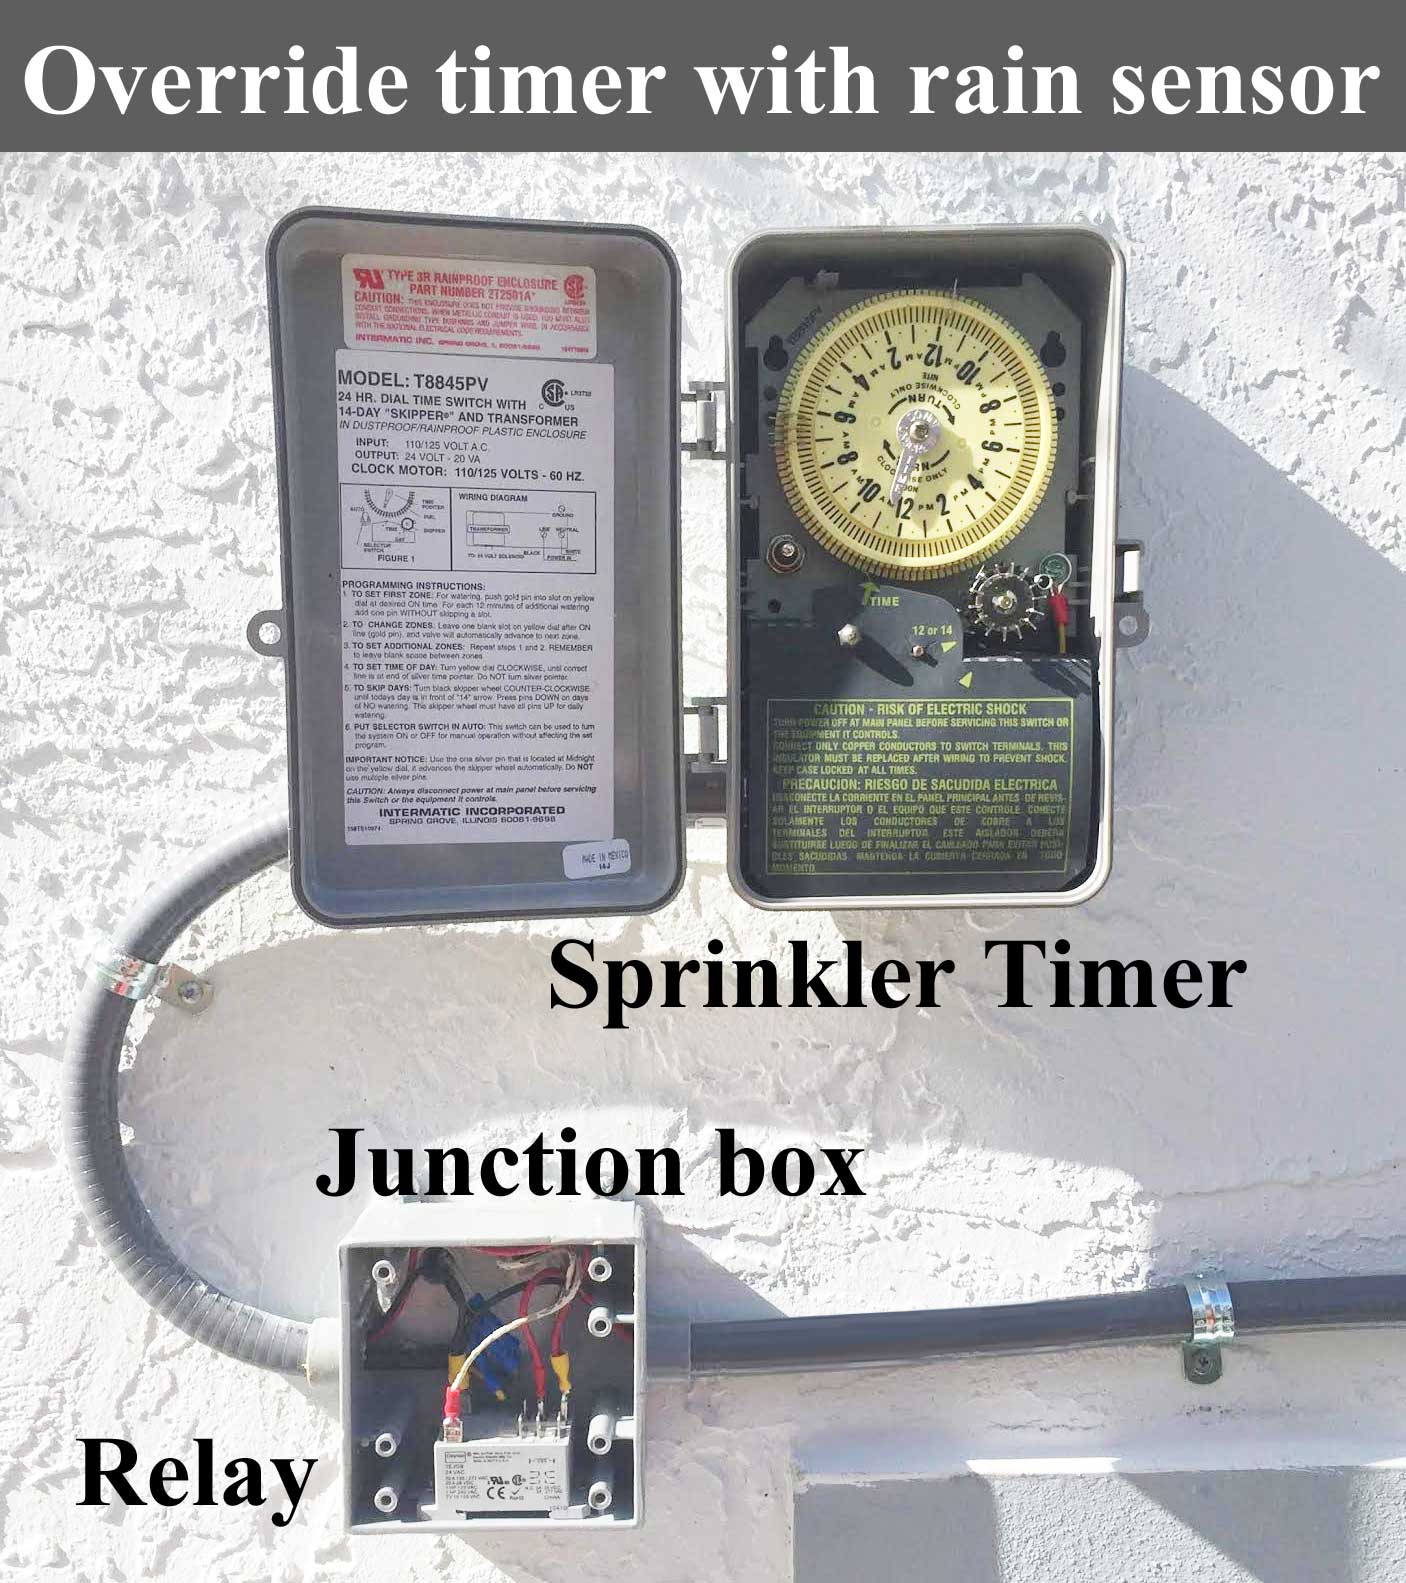 Override timer with rain sensor how to wire intermatic sprinkler and irrigation timers and manuals intermatic t8845pv wiring diagram at edmiracle.co